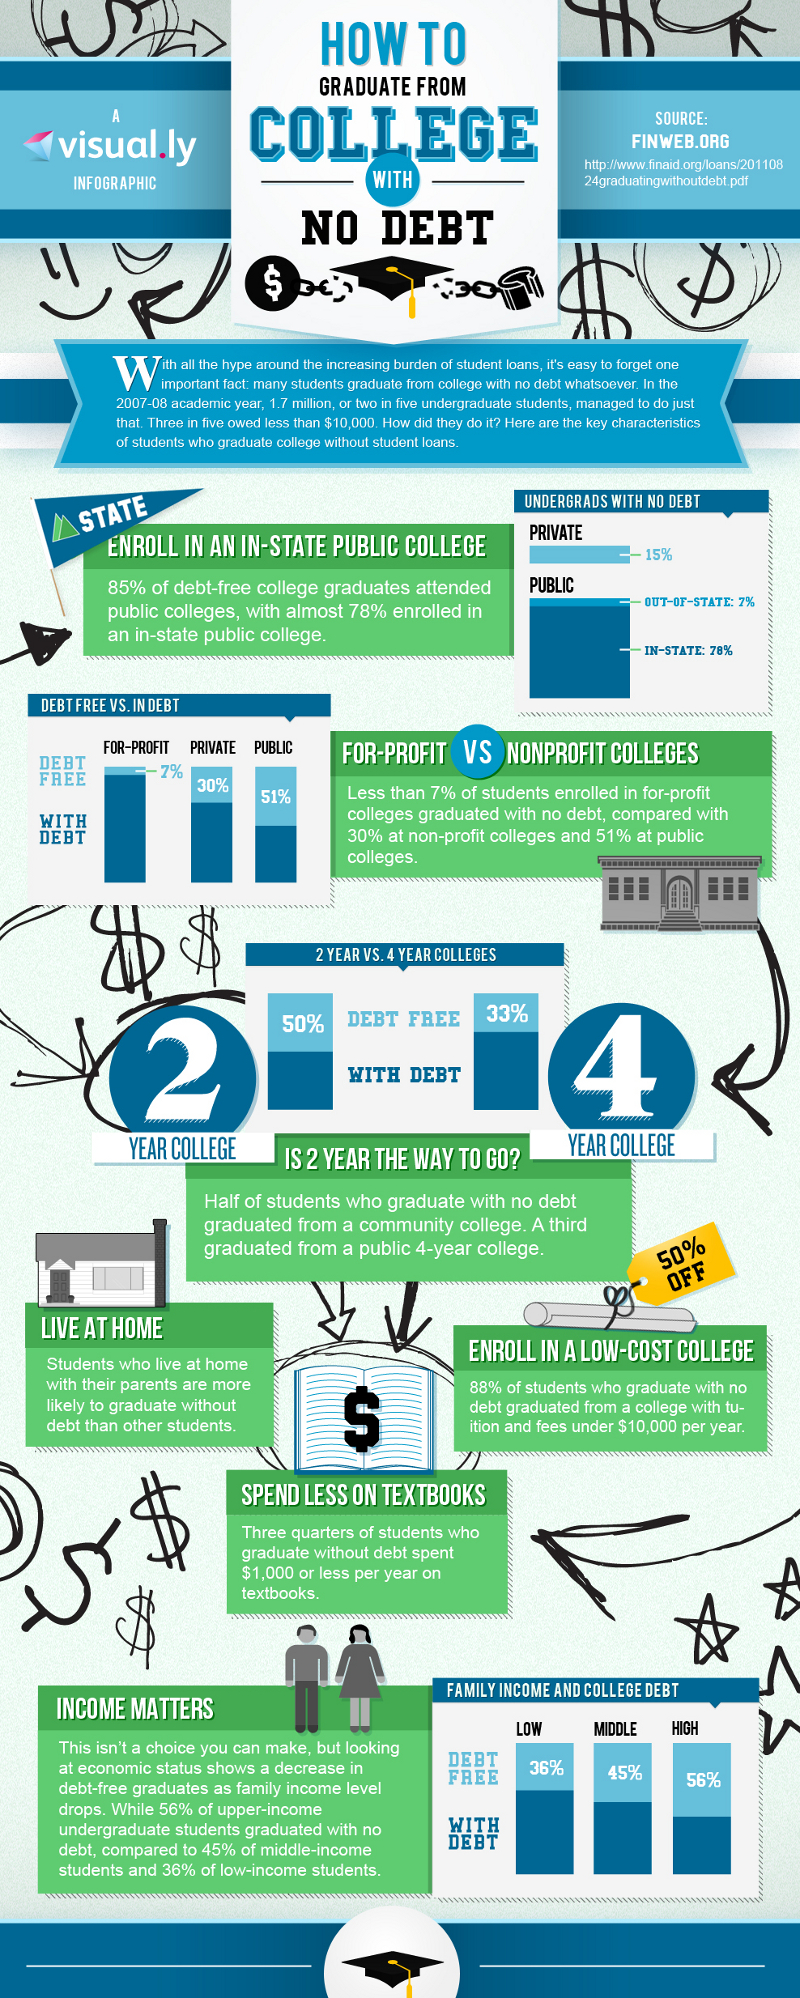 How to Graduate from College Debt Free